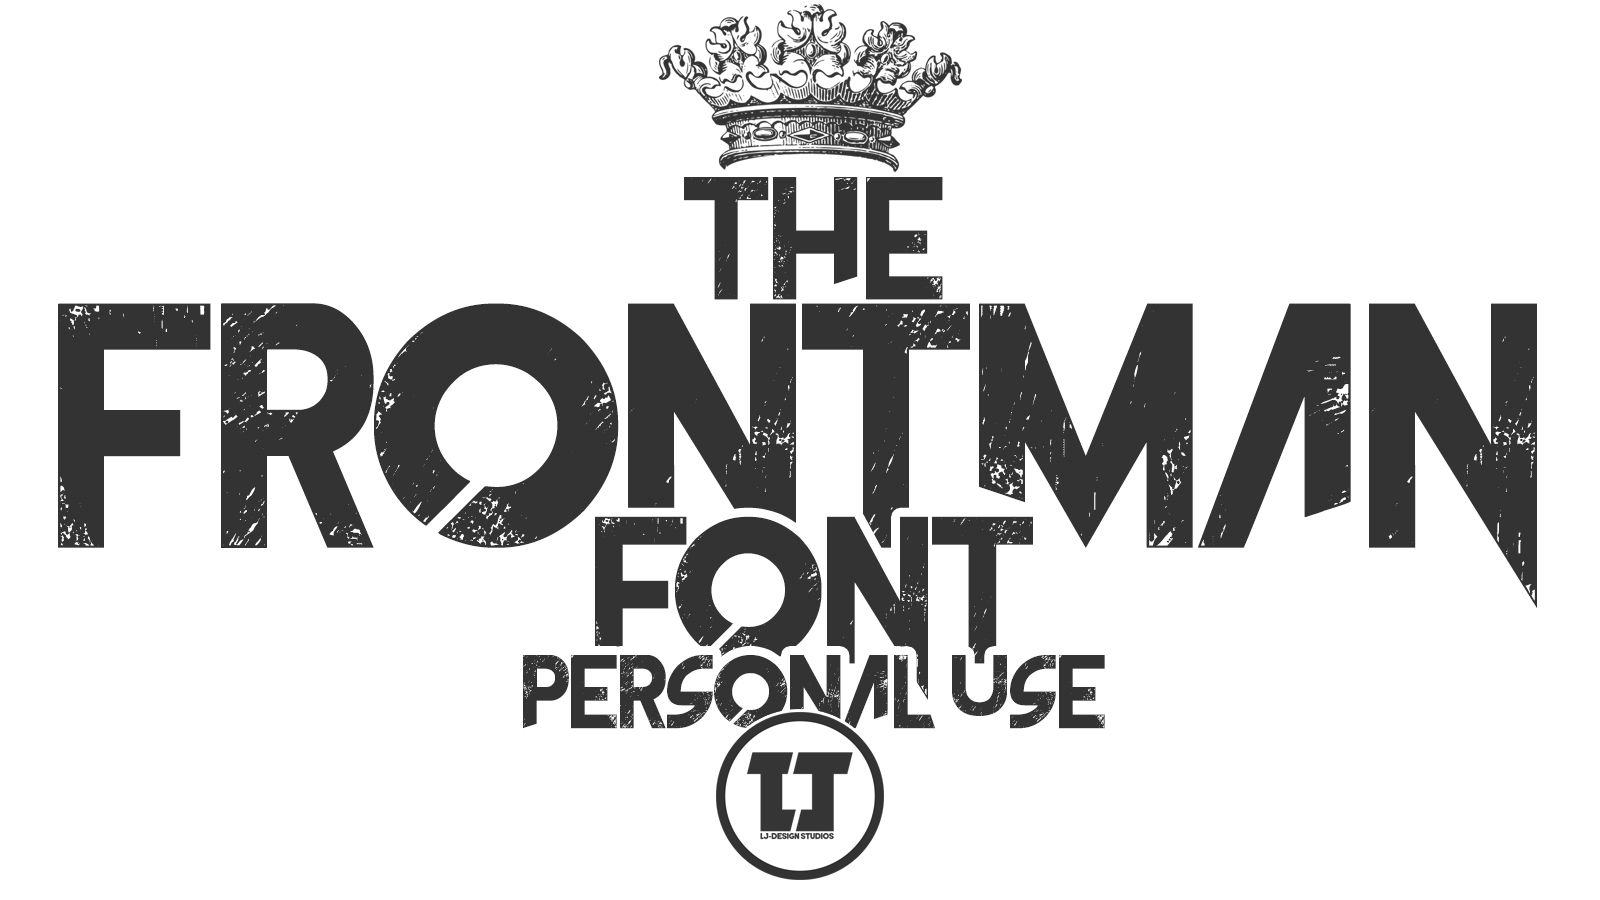 Rock Fonts - Download 222 free styles - FontSpace